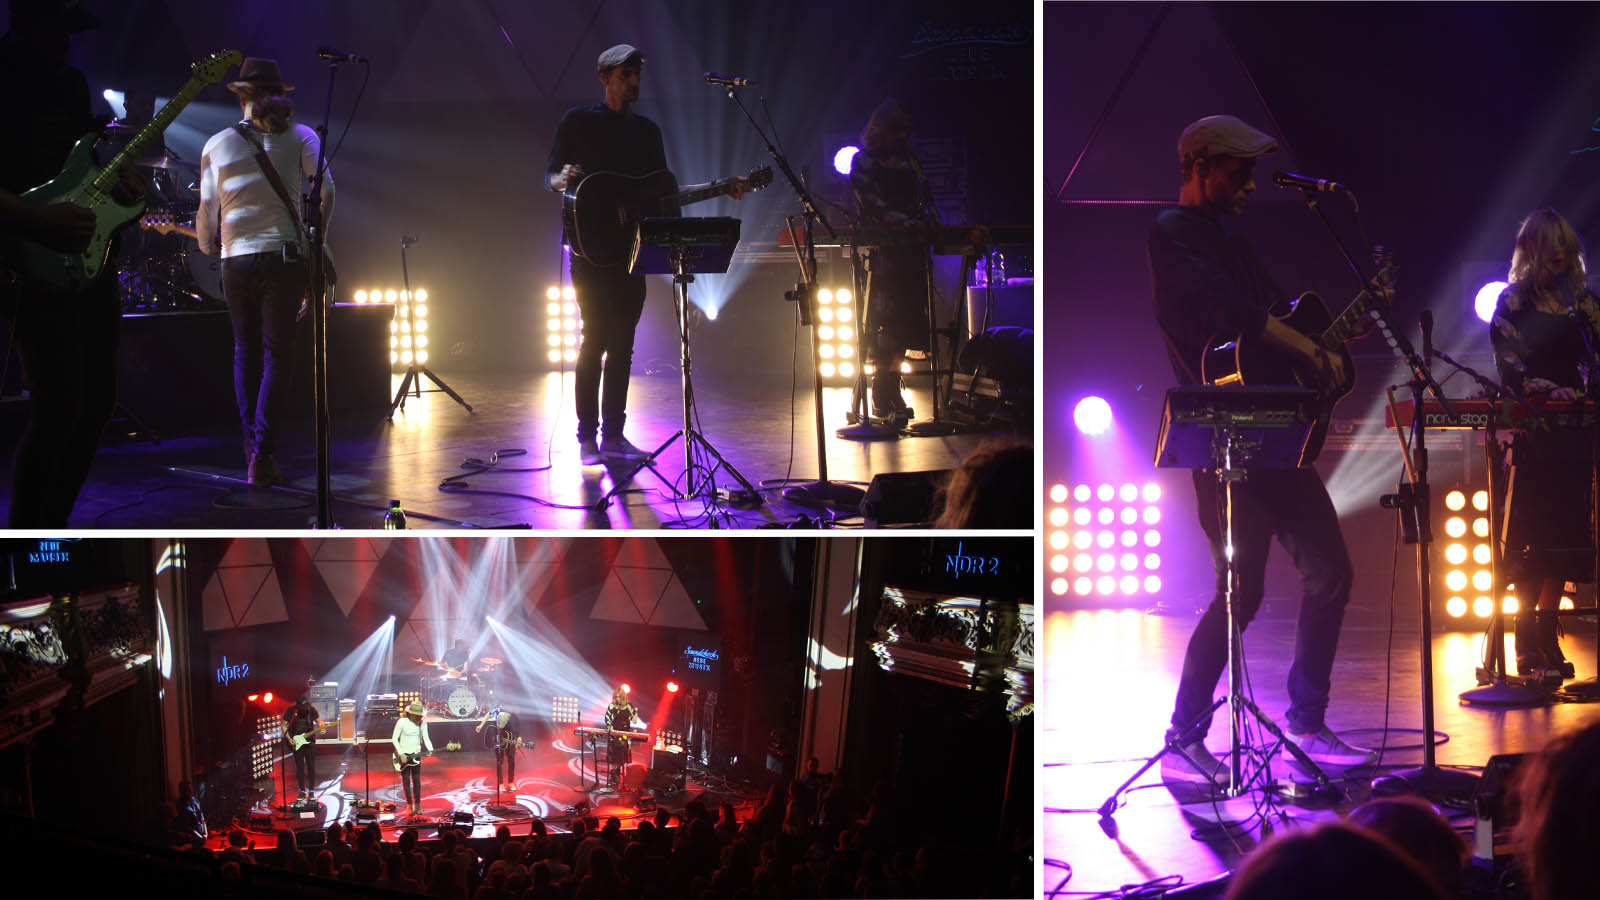 aboutcities-goettingen-ndr2-soundcheck-walking-on-cars